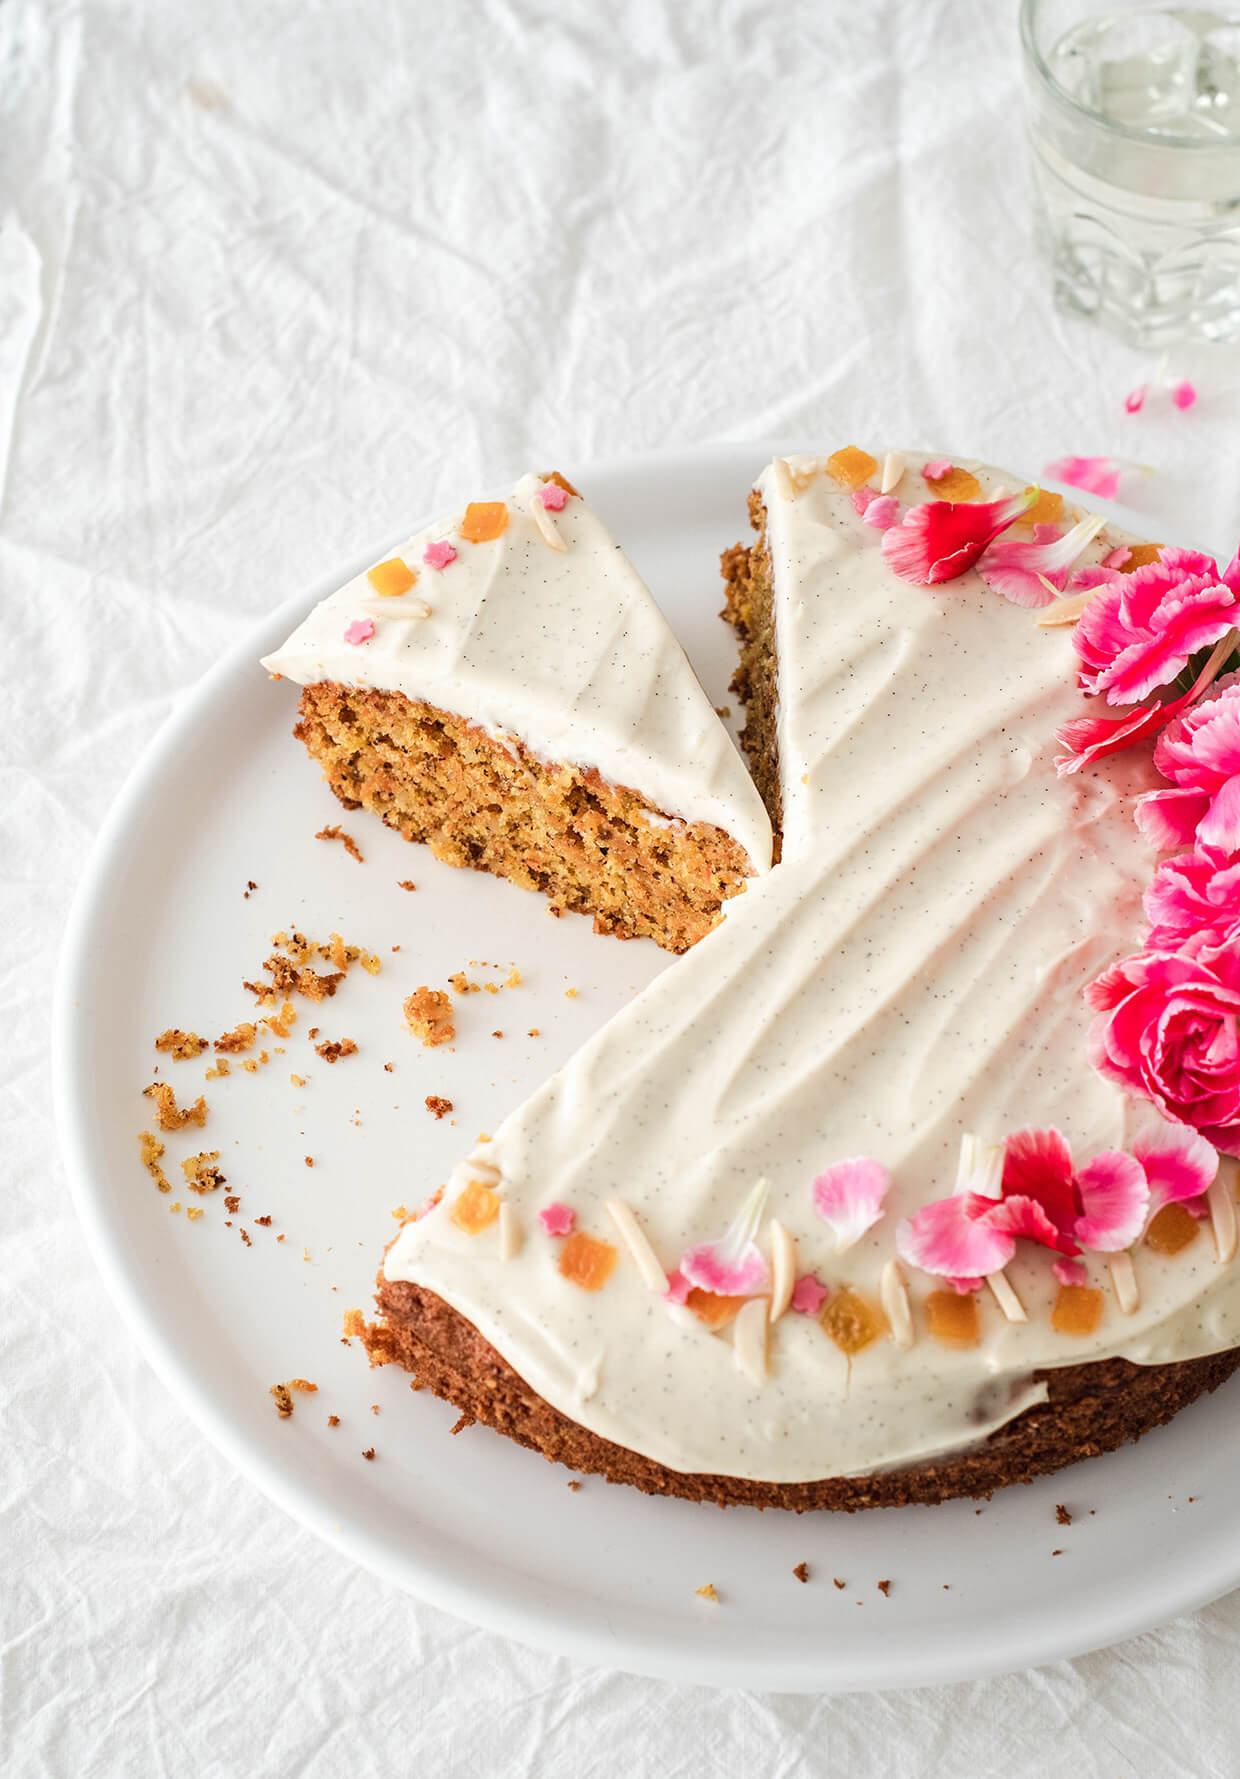 Recipe for Orange almond carrot cake with creme fraiche frosting - sliced cake on plate with flowers